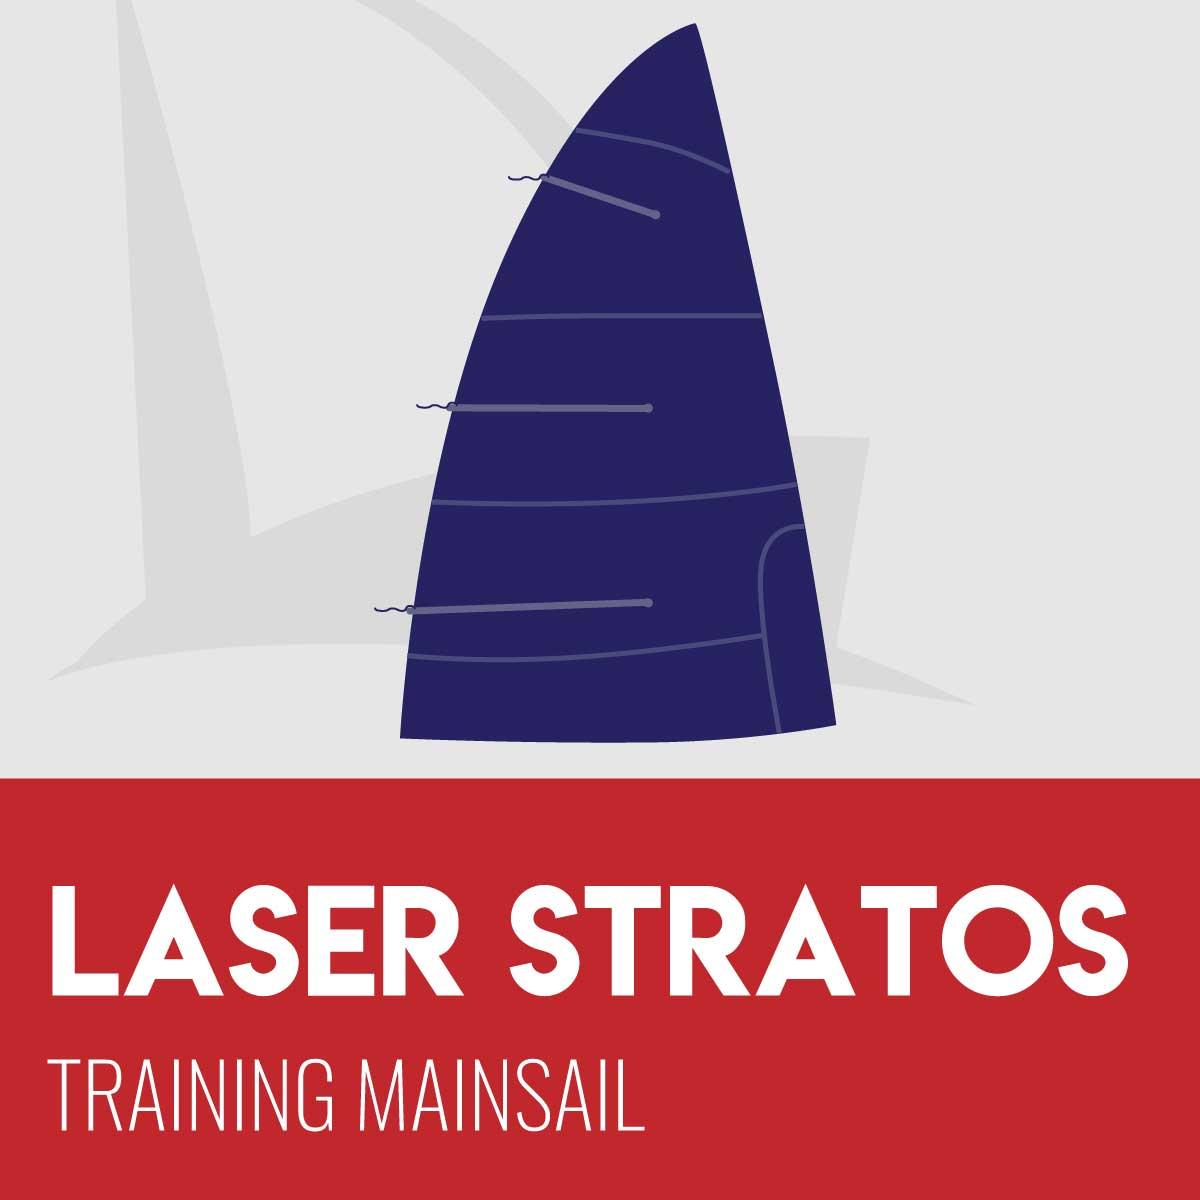 Laser Stratos Training Mainsail